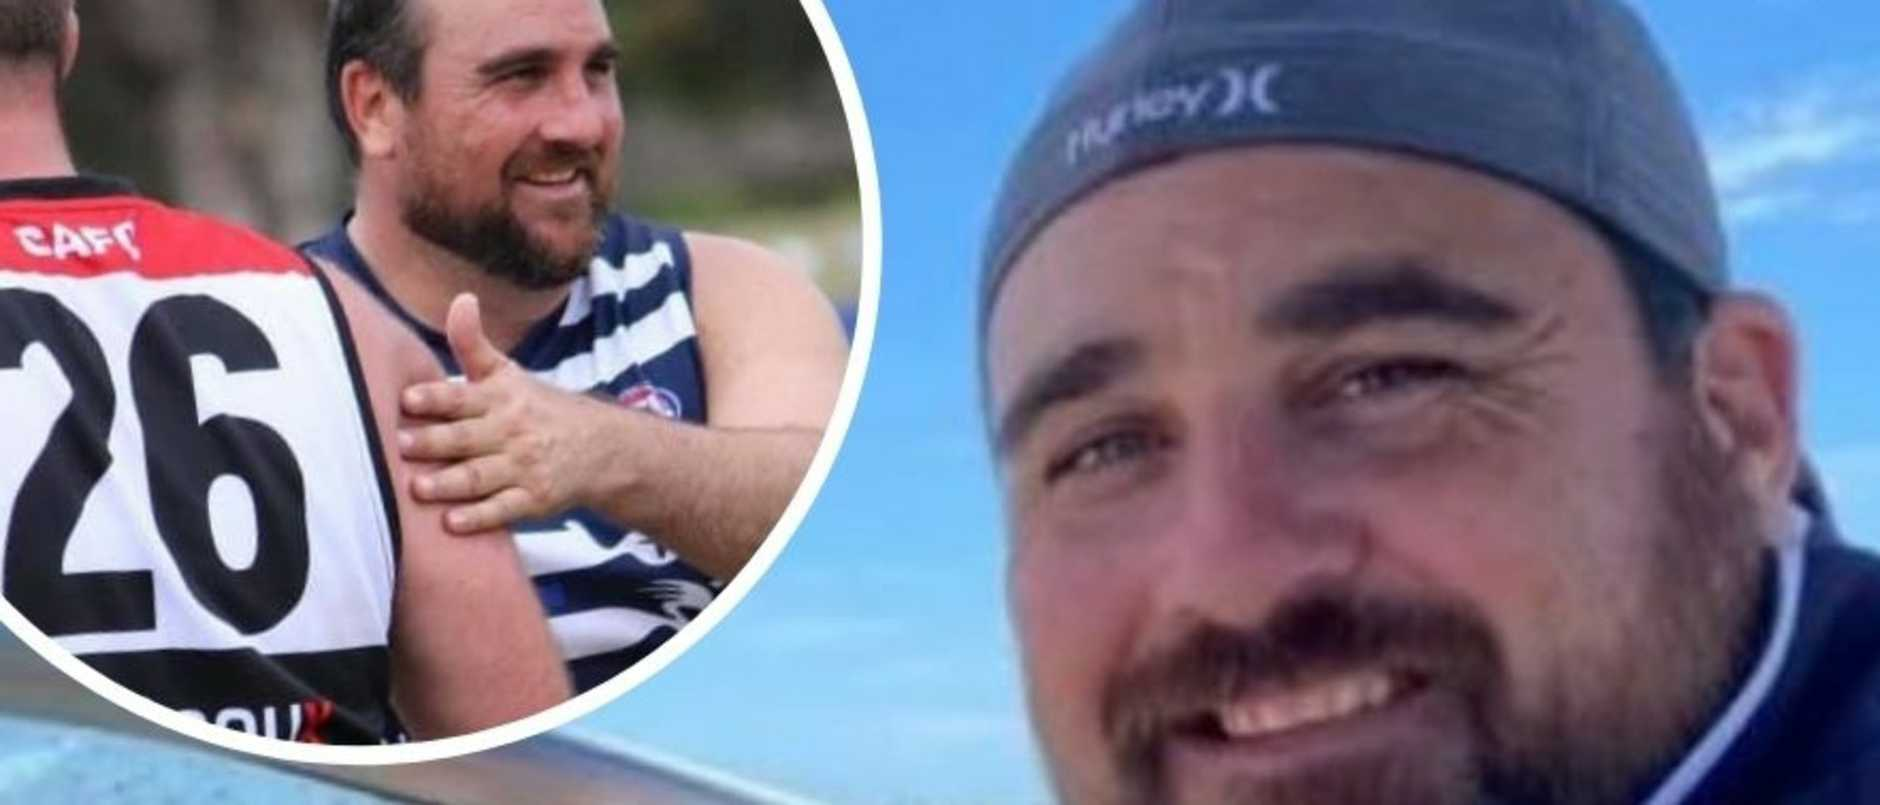 A memorial to celebrate the life of a school principal, popular Aussie rules coach and devoted father-of-three has been organised.